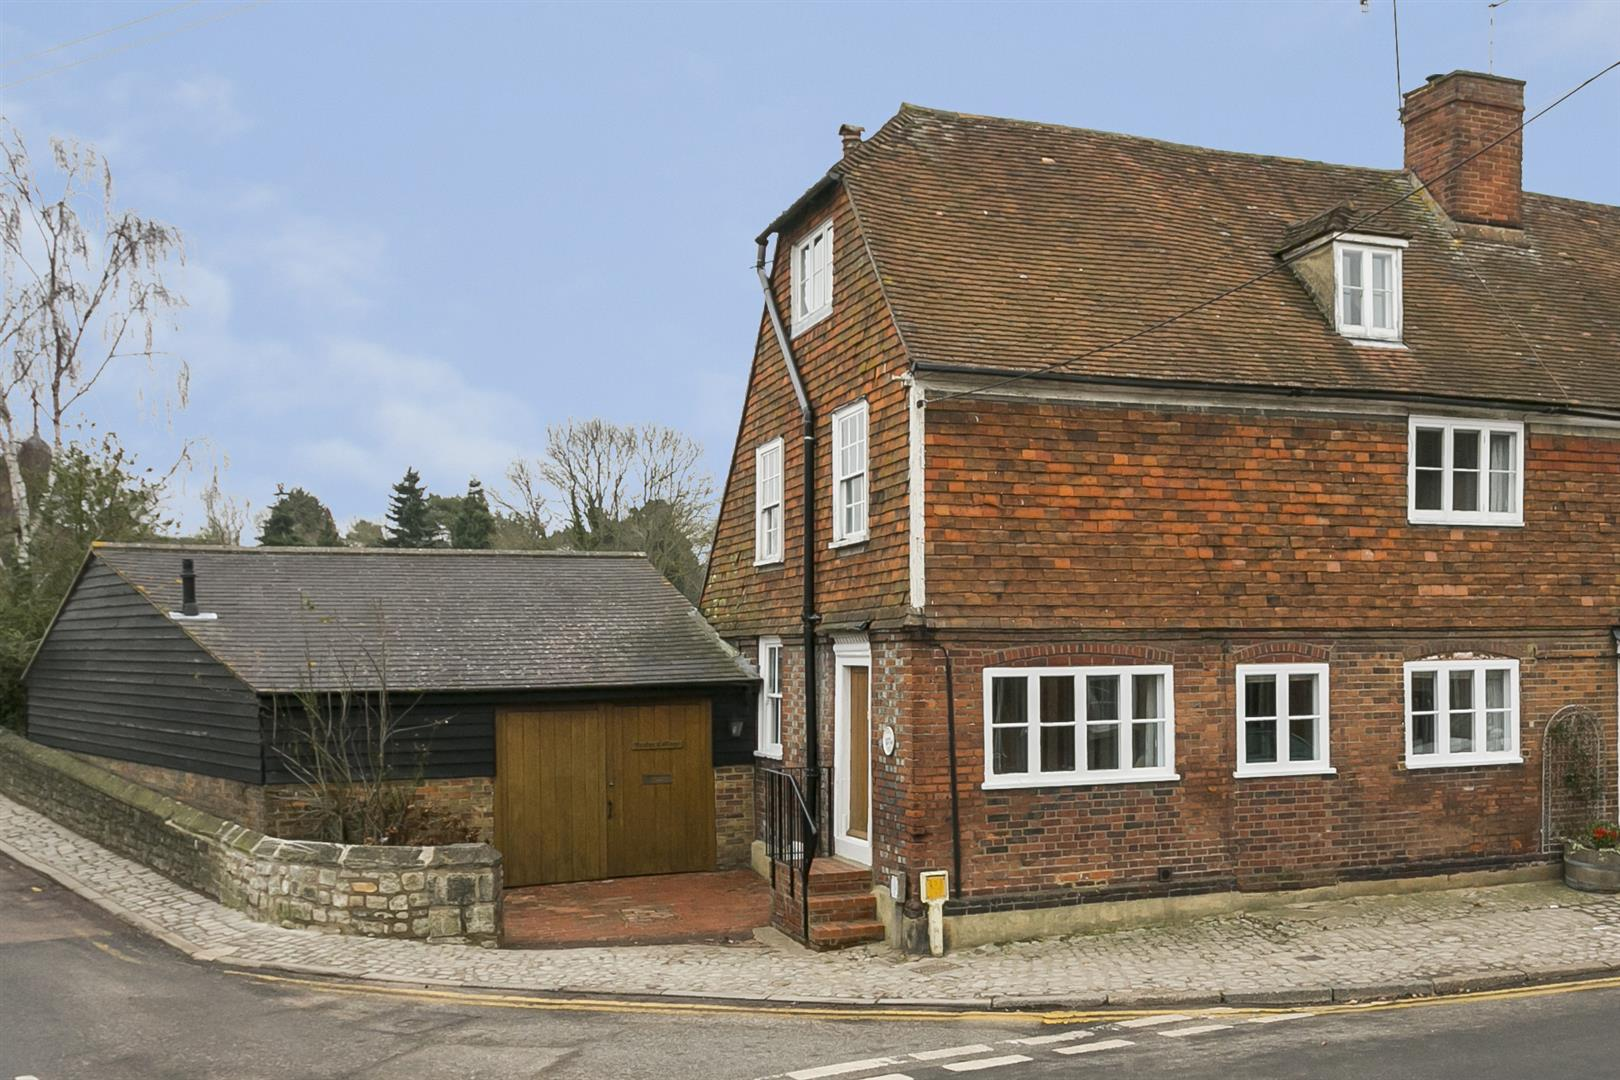 4 Bedrooms Detached House for sale in High Street, Yalding, Maidstone